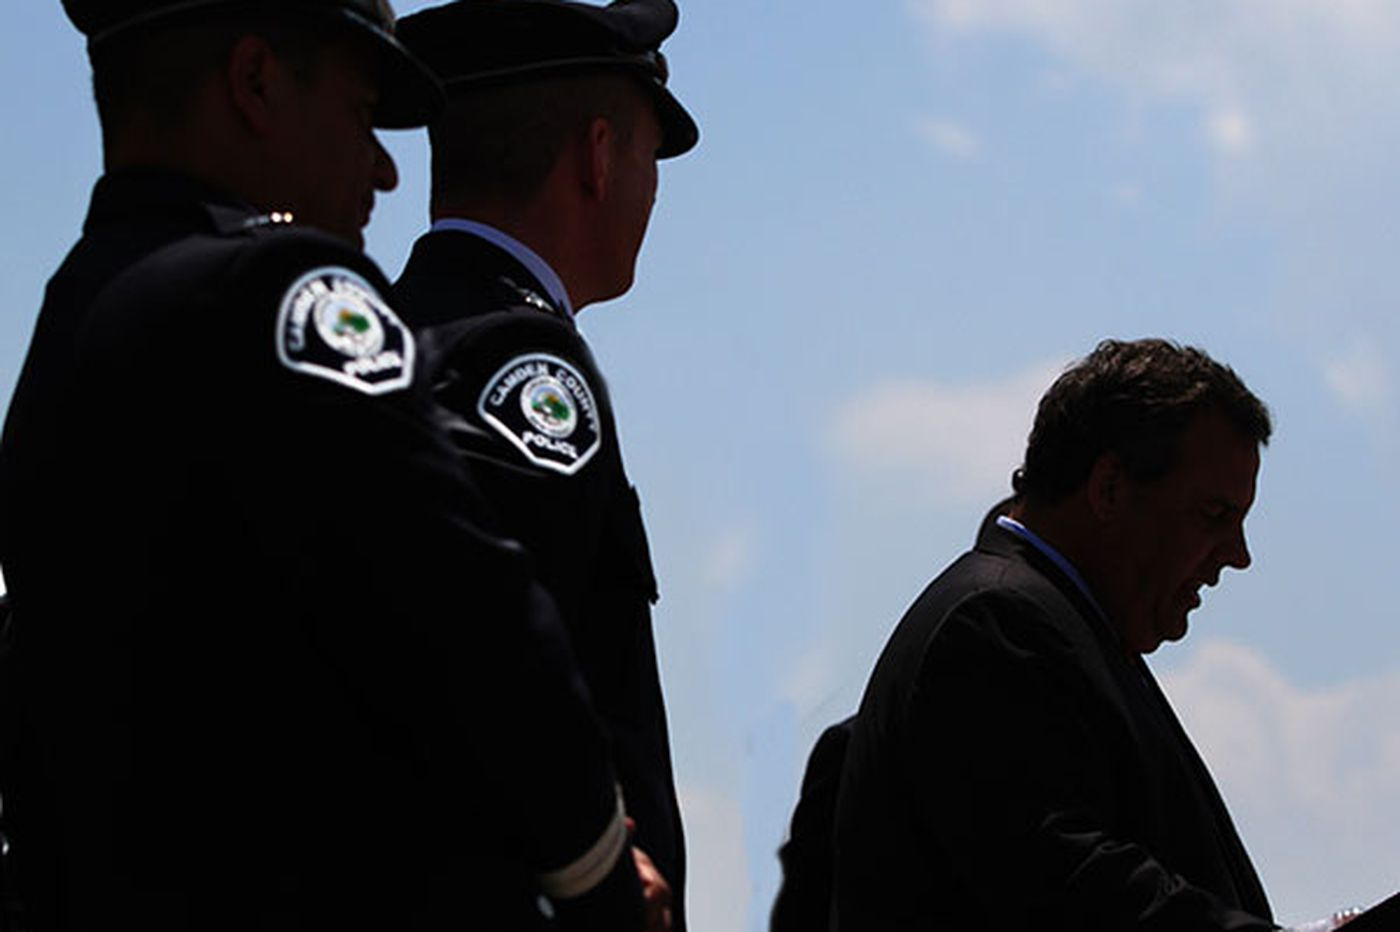 Christie touts Camden policing as model